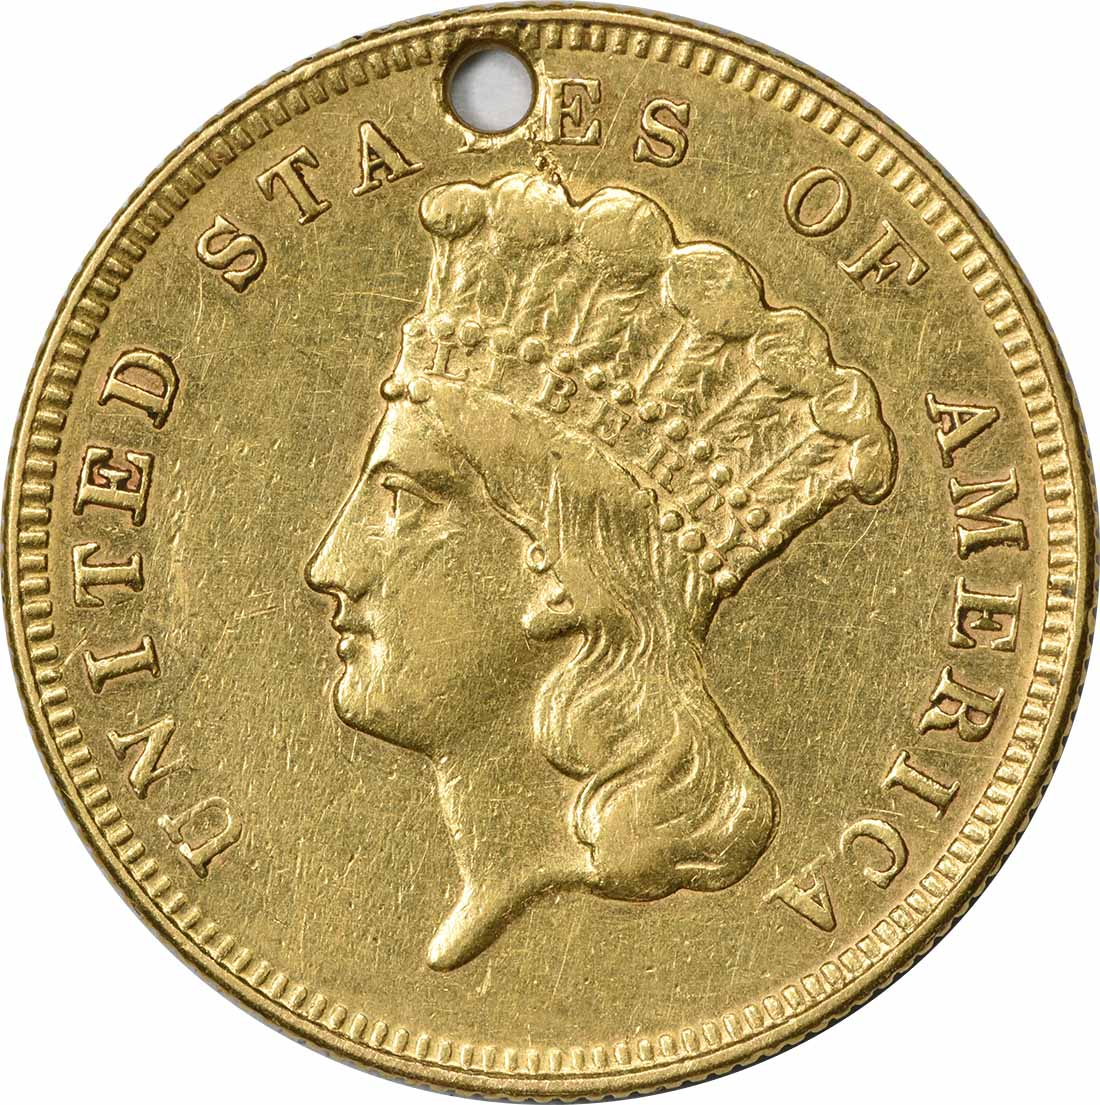 1874 $3 Gold EF (Hole) Uncertified